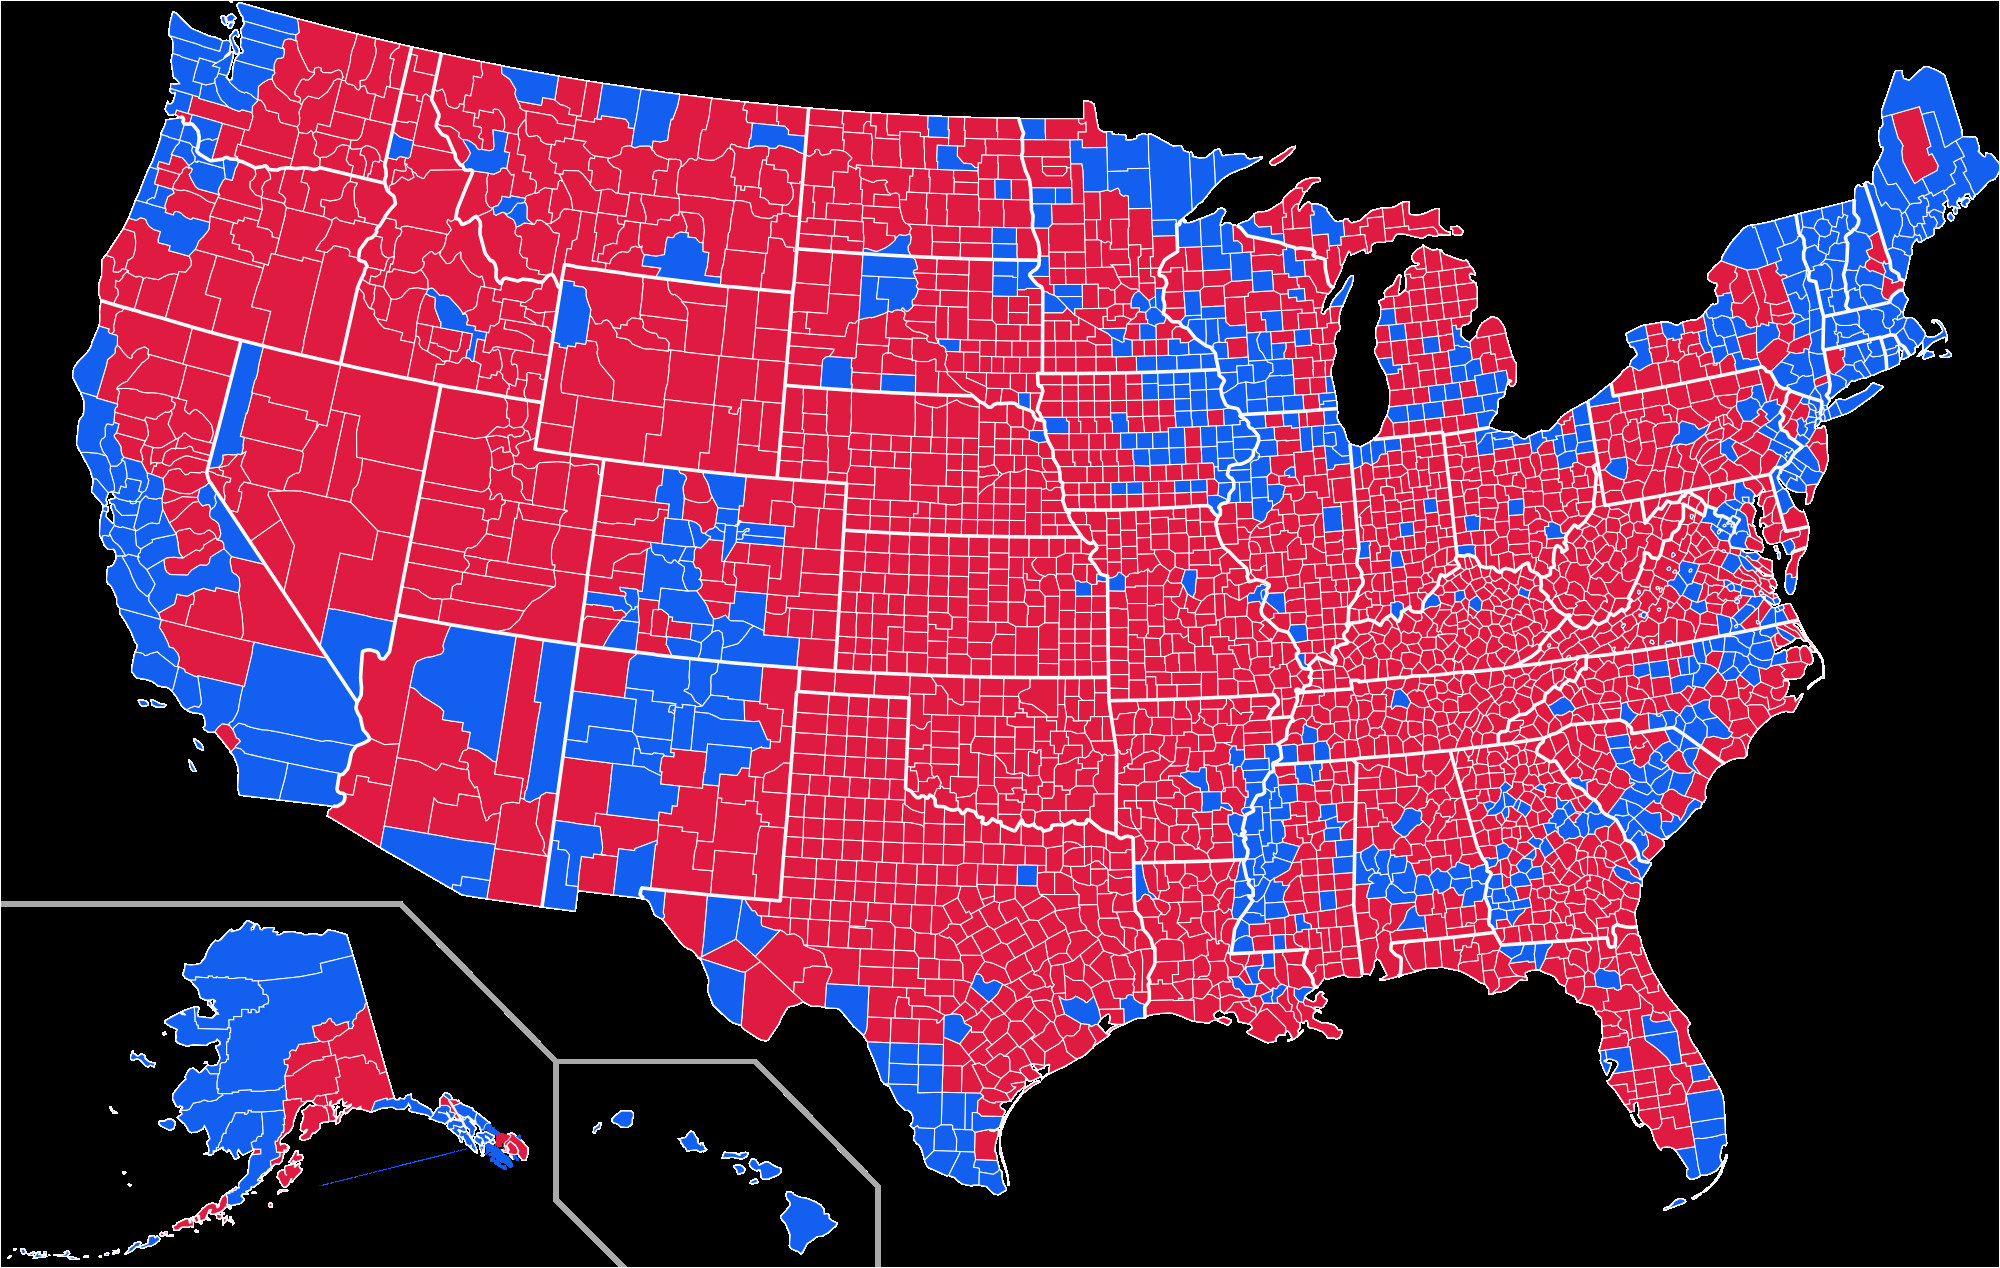 Map Of California Election Results.California Election Results Map 2012 United States Presidential